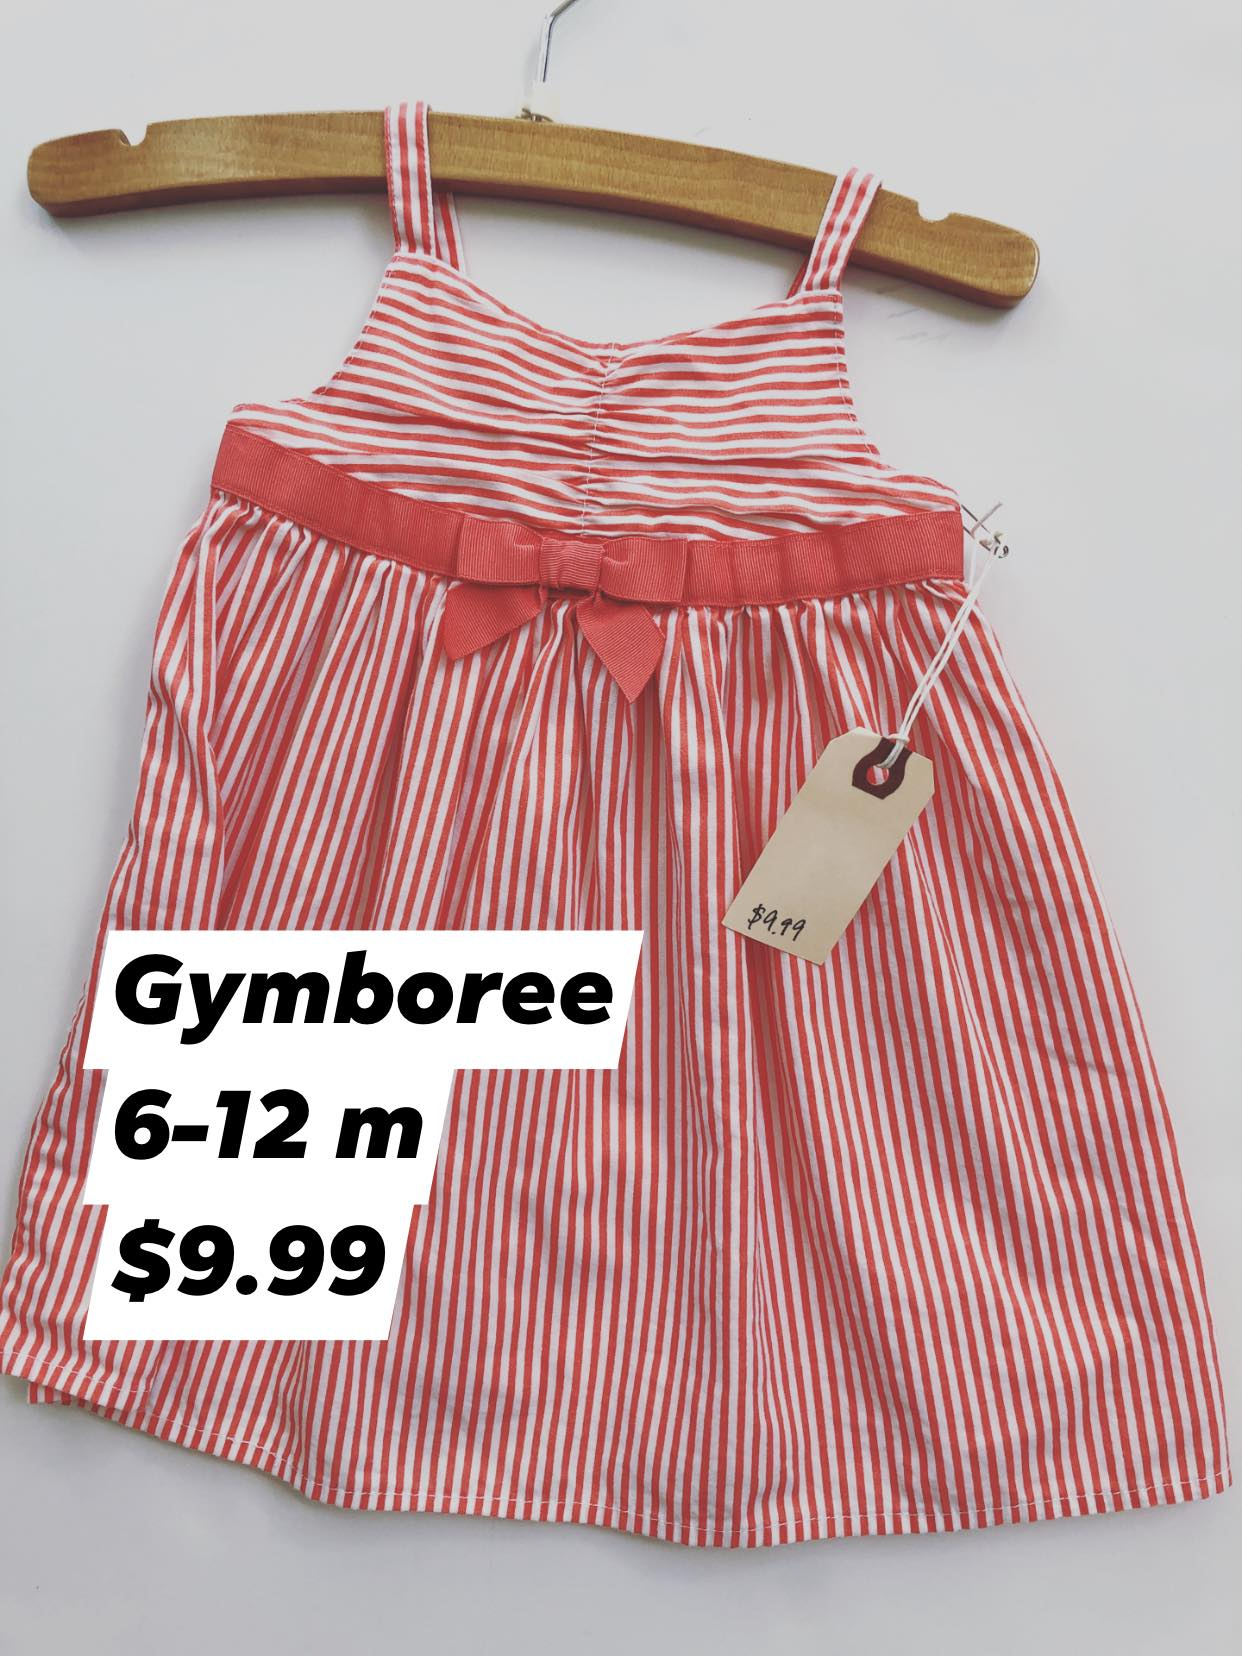 Resale 6-12 m Gymboree Coral Stripe Dress